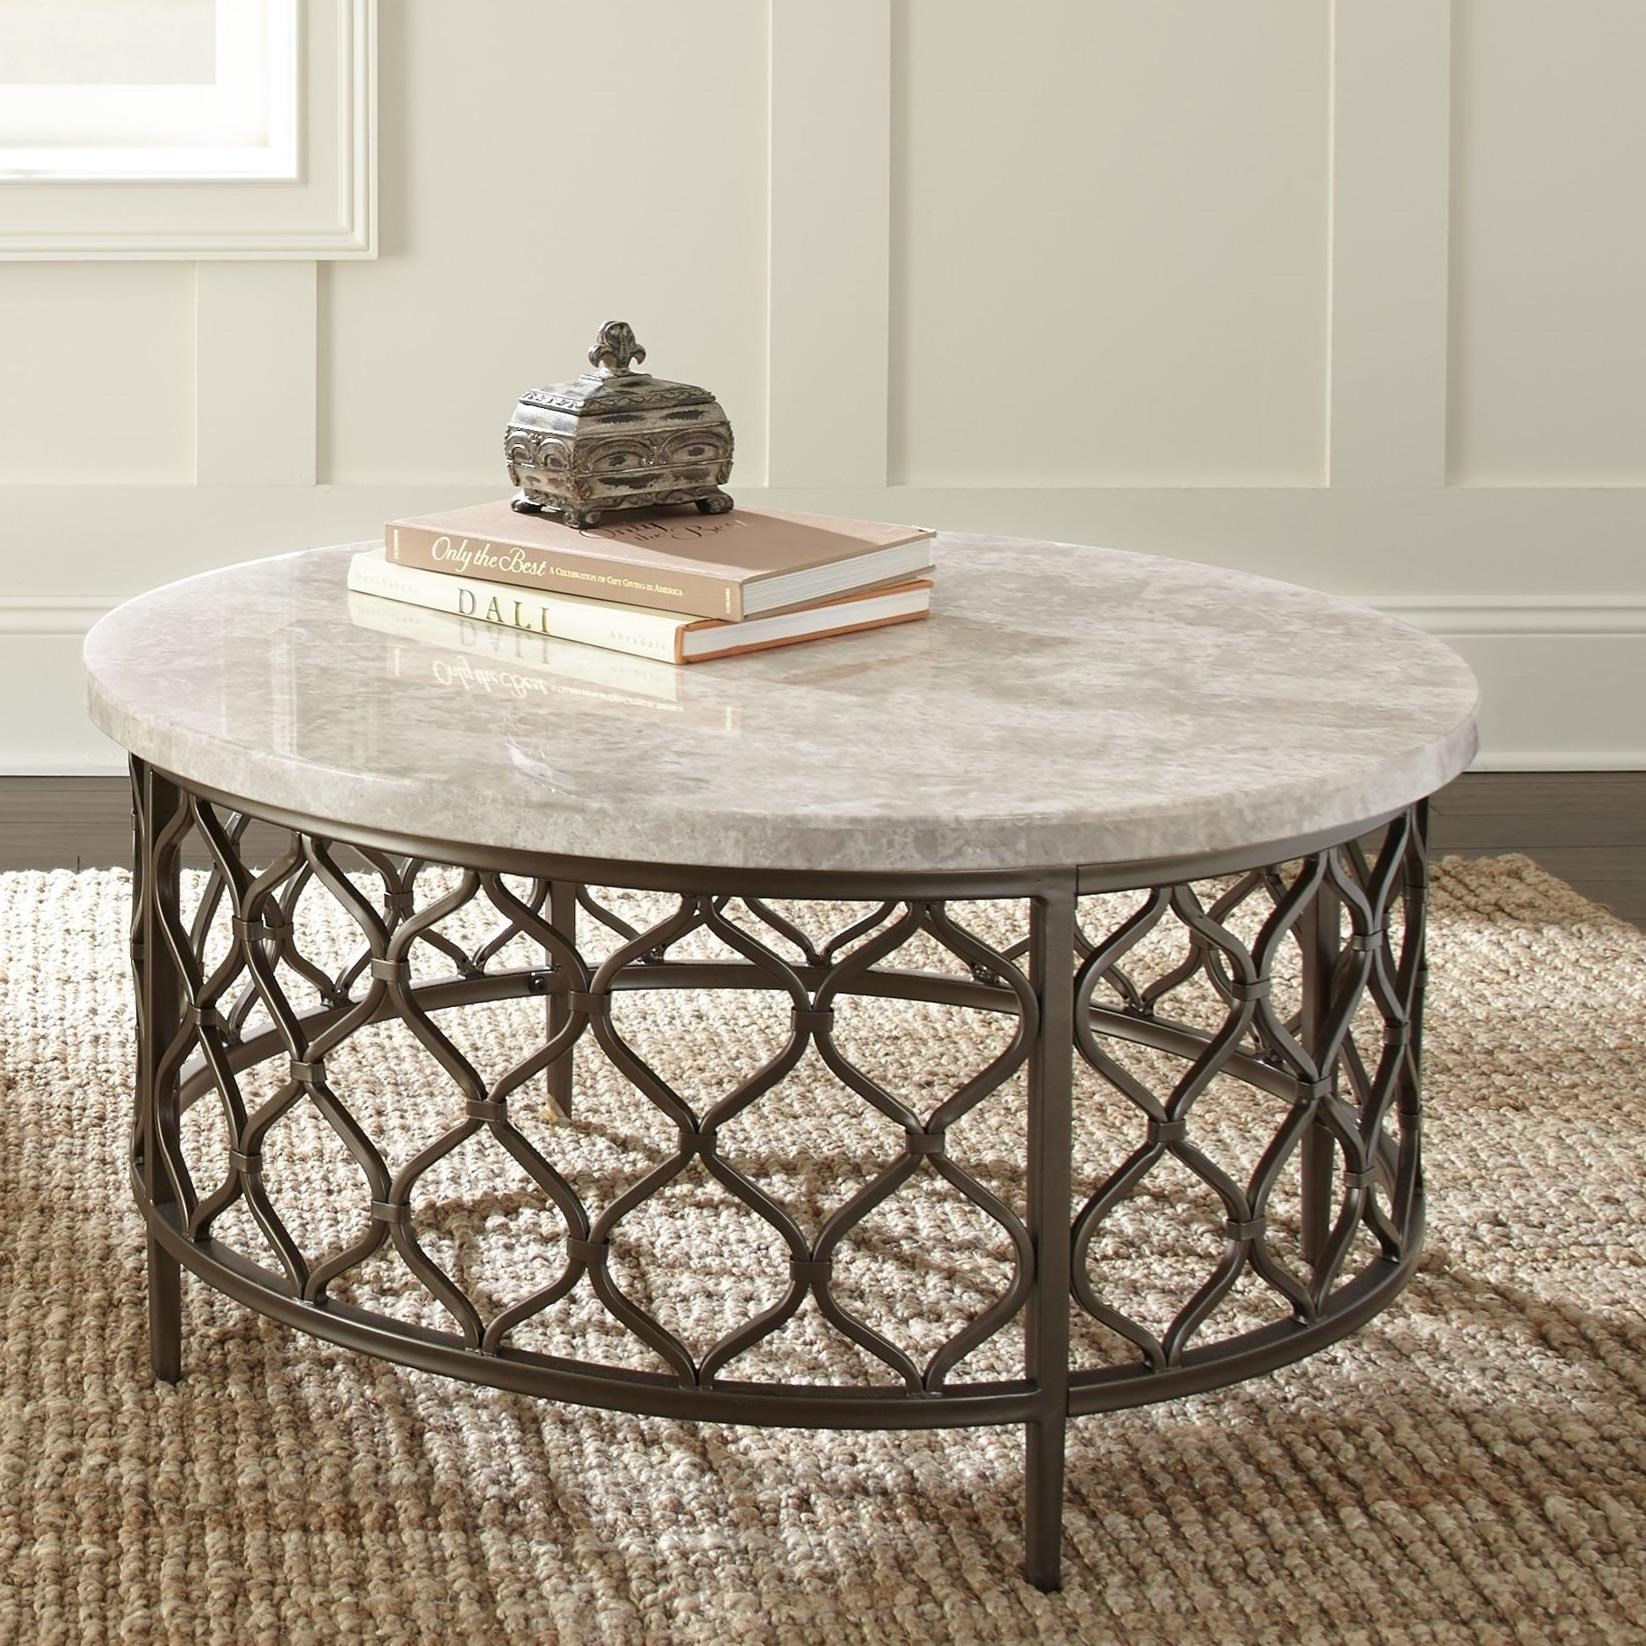 Roland stone top cocktail table morris home cocktail for Morris home